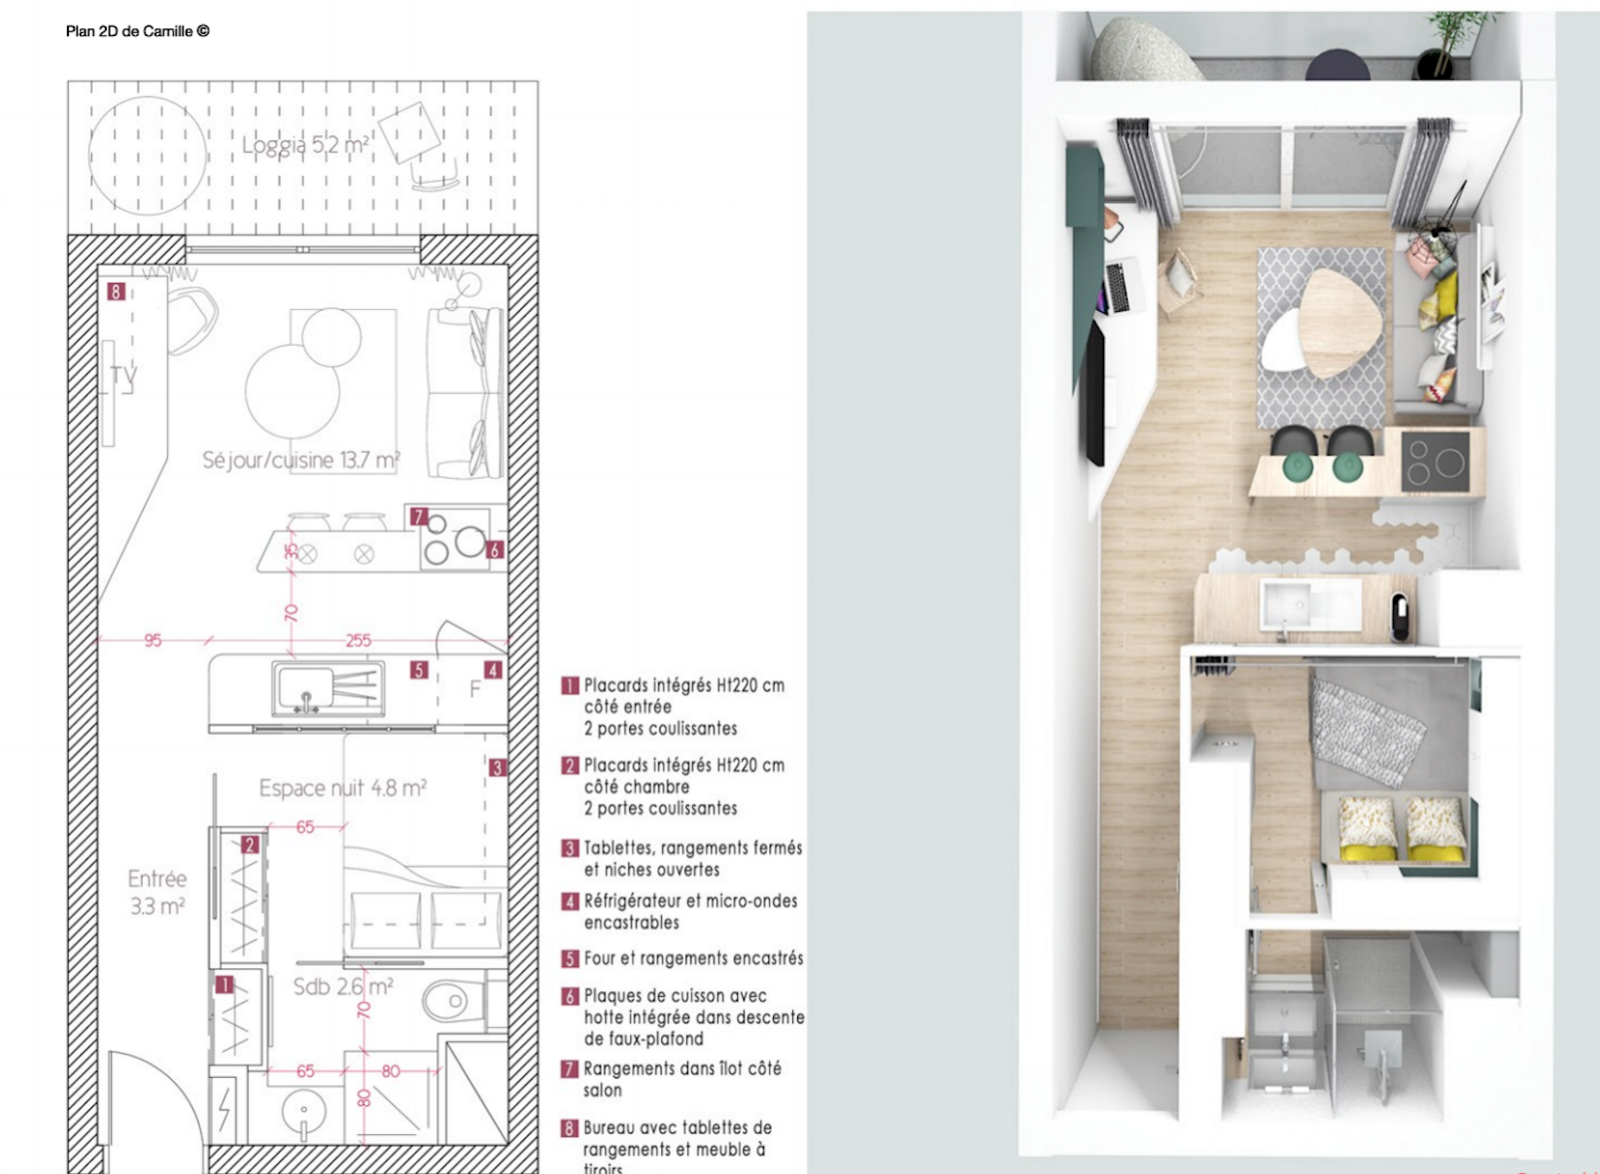 Avant apr s am nagement d un studio de 25m2 destin la location for Plan amenagement studio 25m2